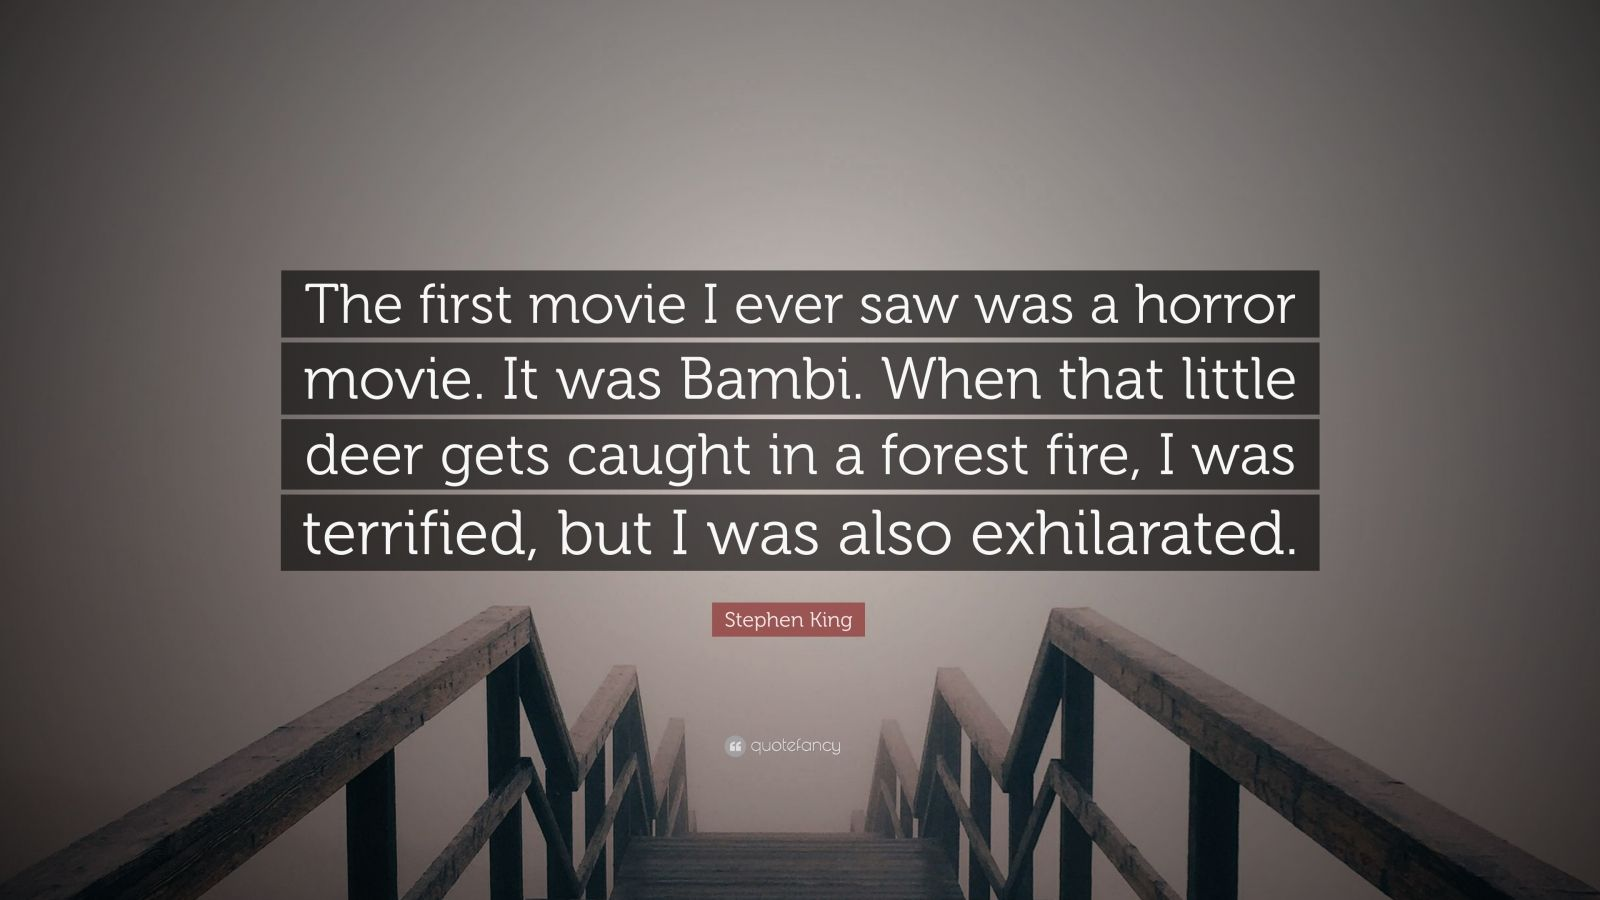 """Stephen King Quote: """"The first movie I ever saw was a horror movie. It was Bambi. When that little deer gets caught in a forest fire, I was terrified, but I was also exhilarated."""""""